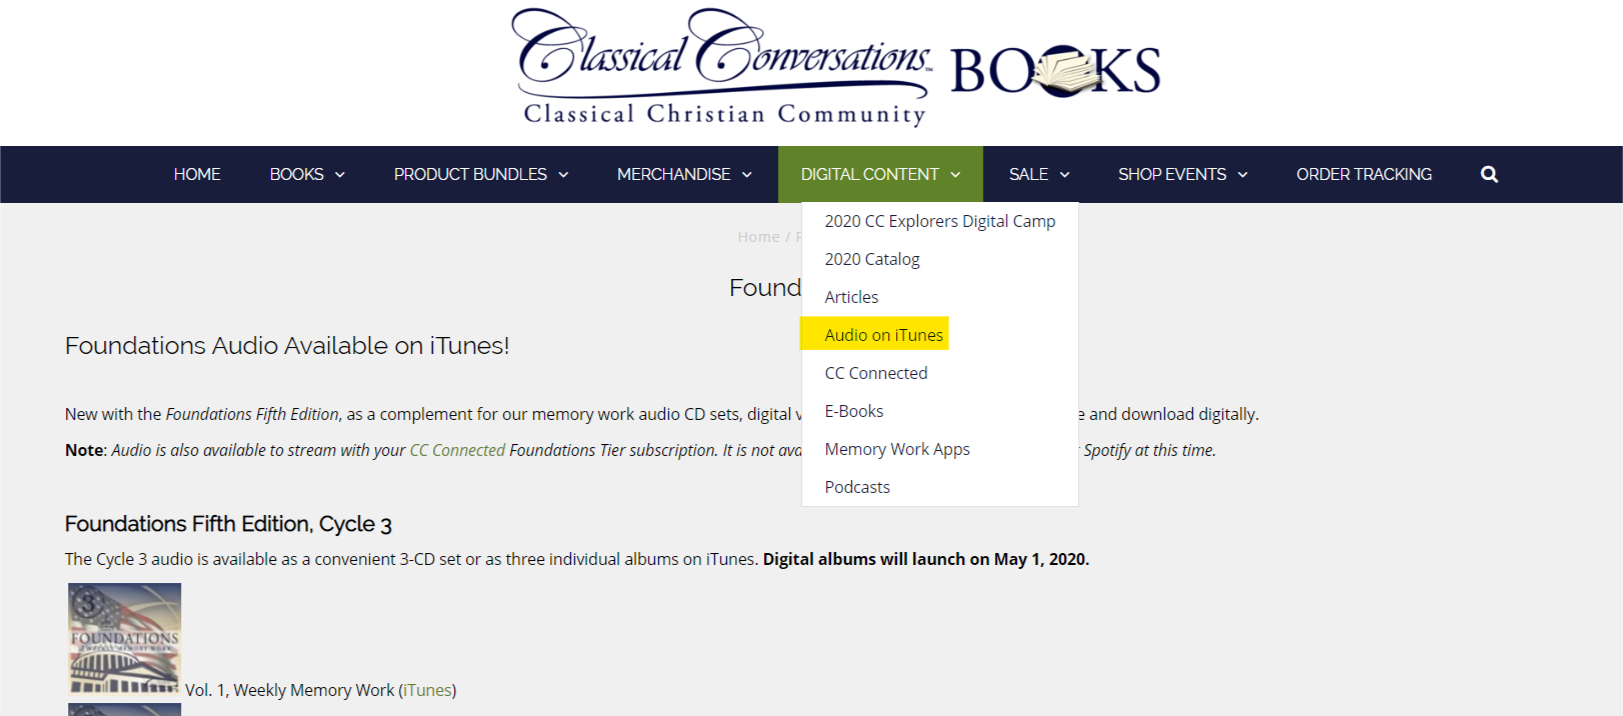 Foundations Audio Cds On Itunes Classical Conversations Customer Help Site